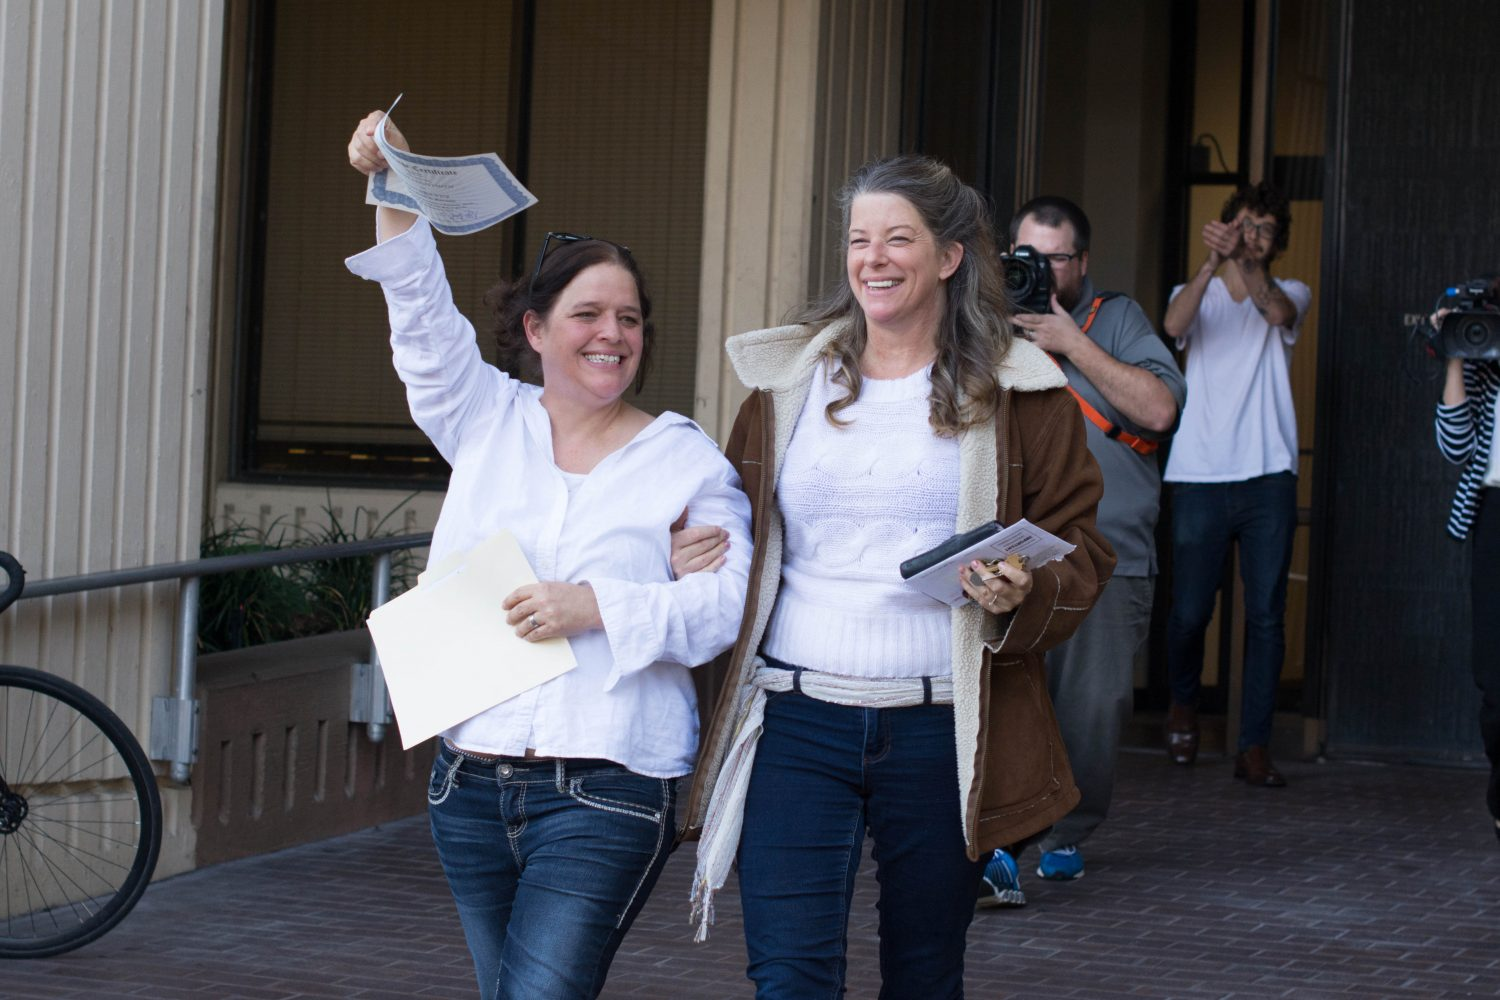 Joy Drawdy (left) holds up her new marriage license with Kat Drawdy (right) exit the Alachua County Courthouse with m